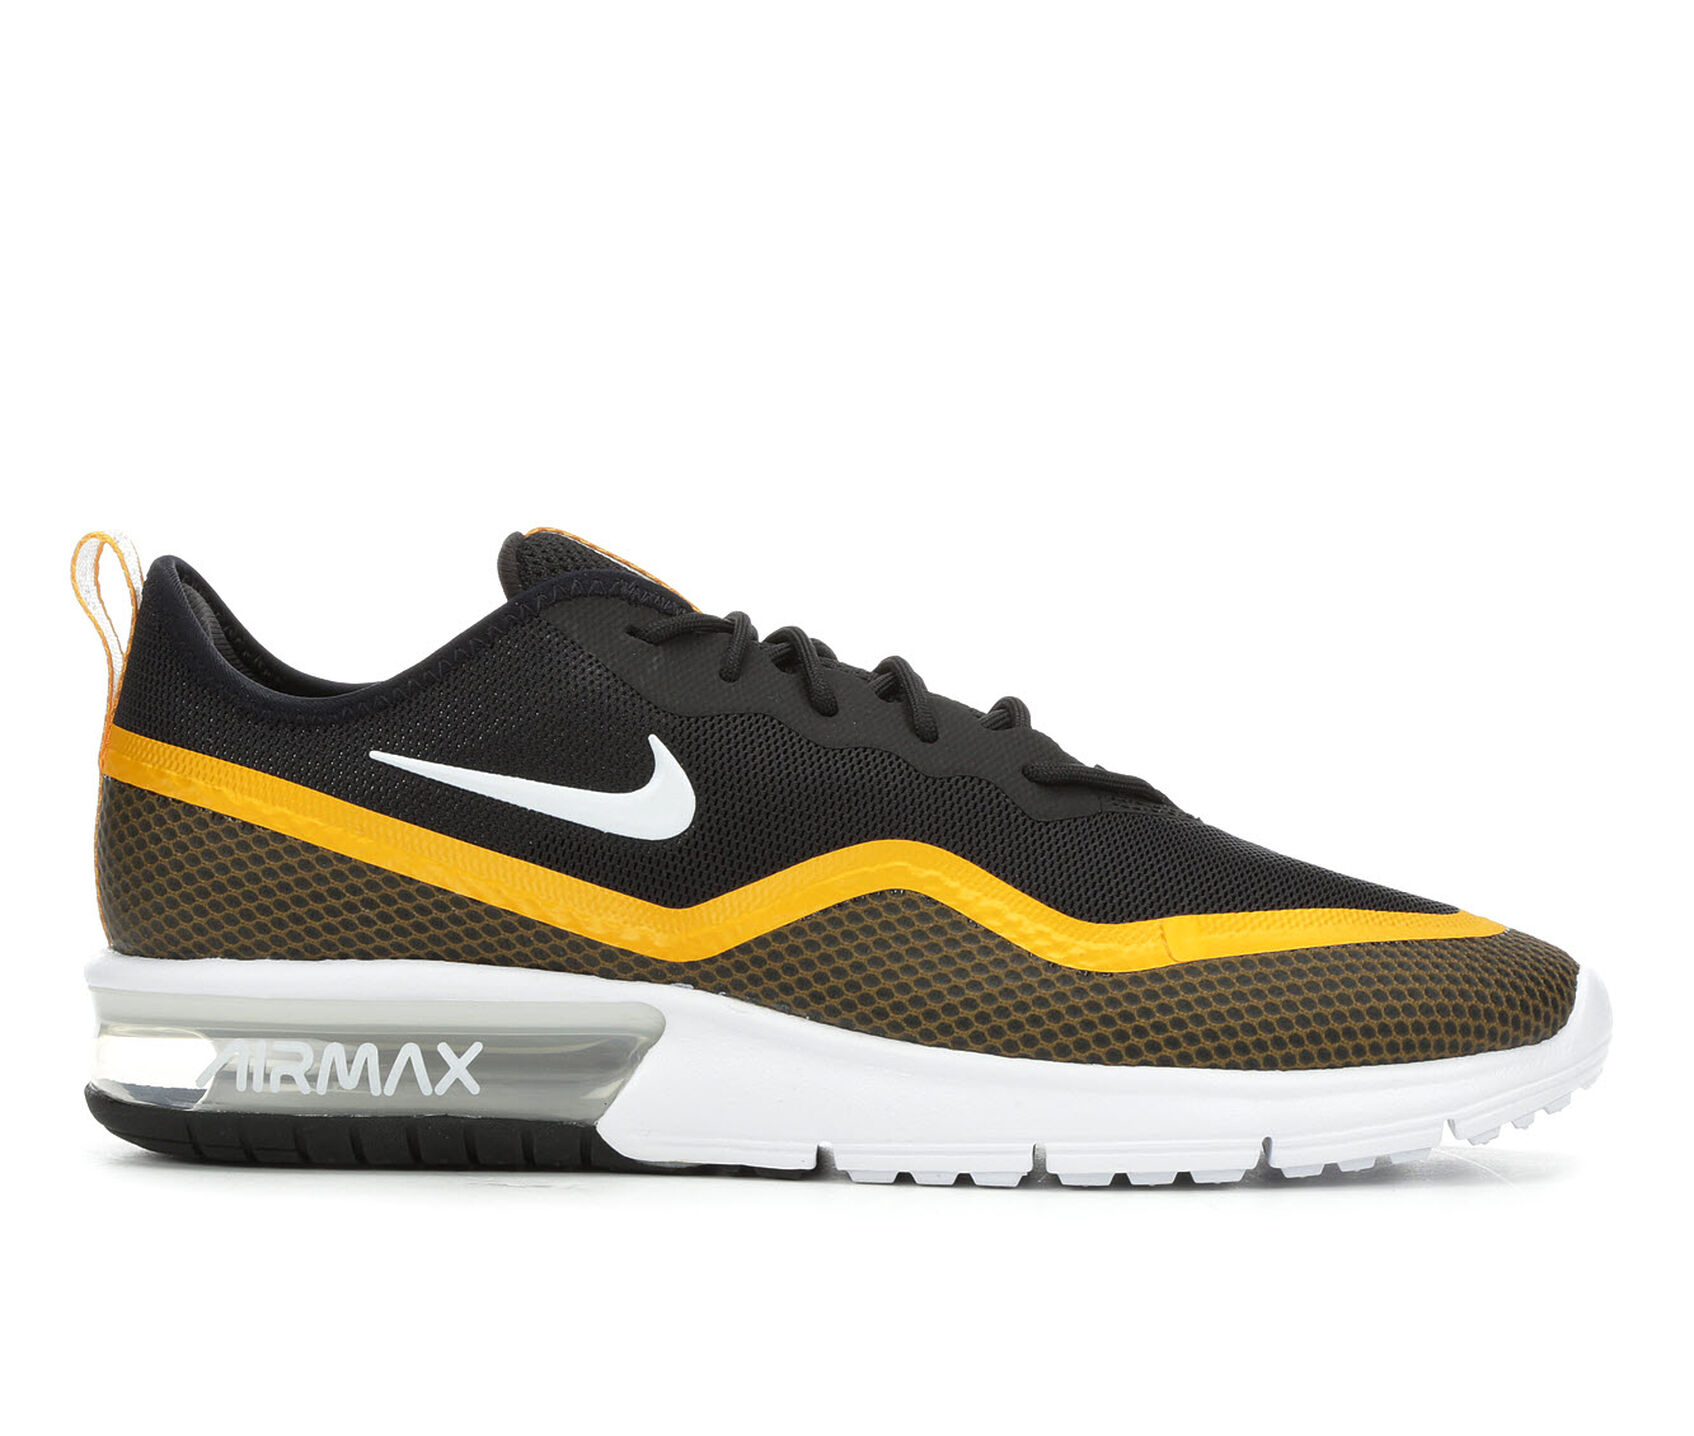 a036b71908f6d Men's Nike Air Max Sequent 4.5 SE Running Shoes | Shoe Carnival